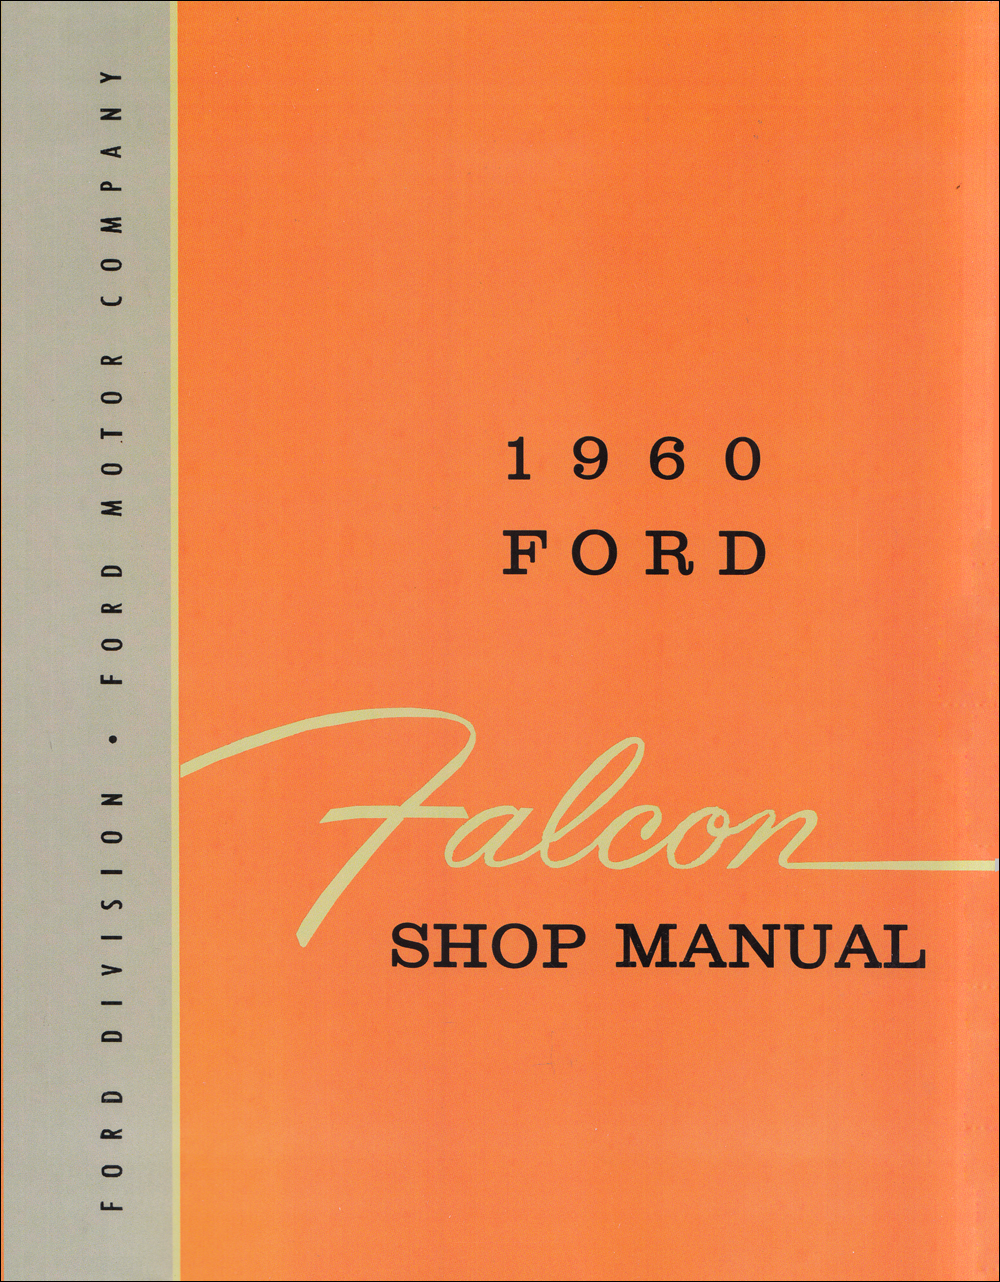 Flathead Electrical Wiring further Fwd in addition Bford Bfalcon Bfutura besides Falcon    et Wiring together with Wiring Diagram. on 1961 ford falcon wiring diagram